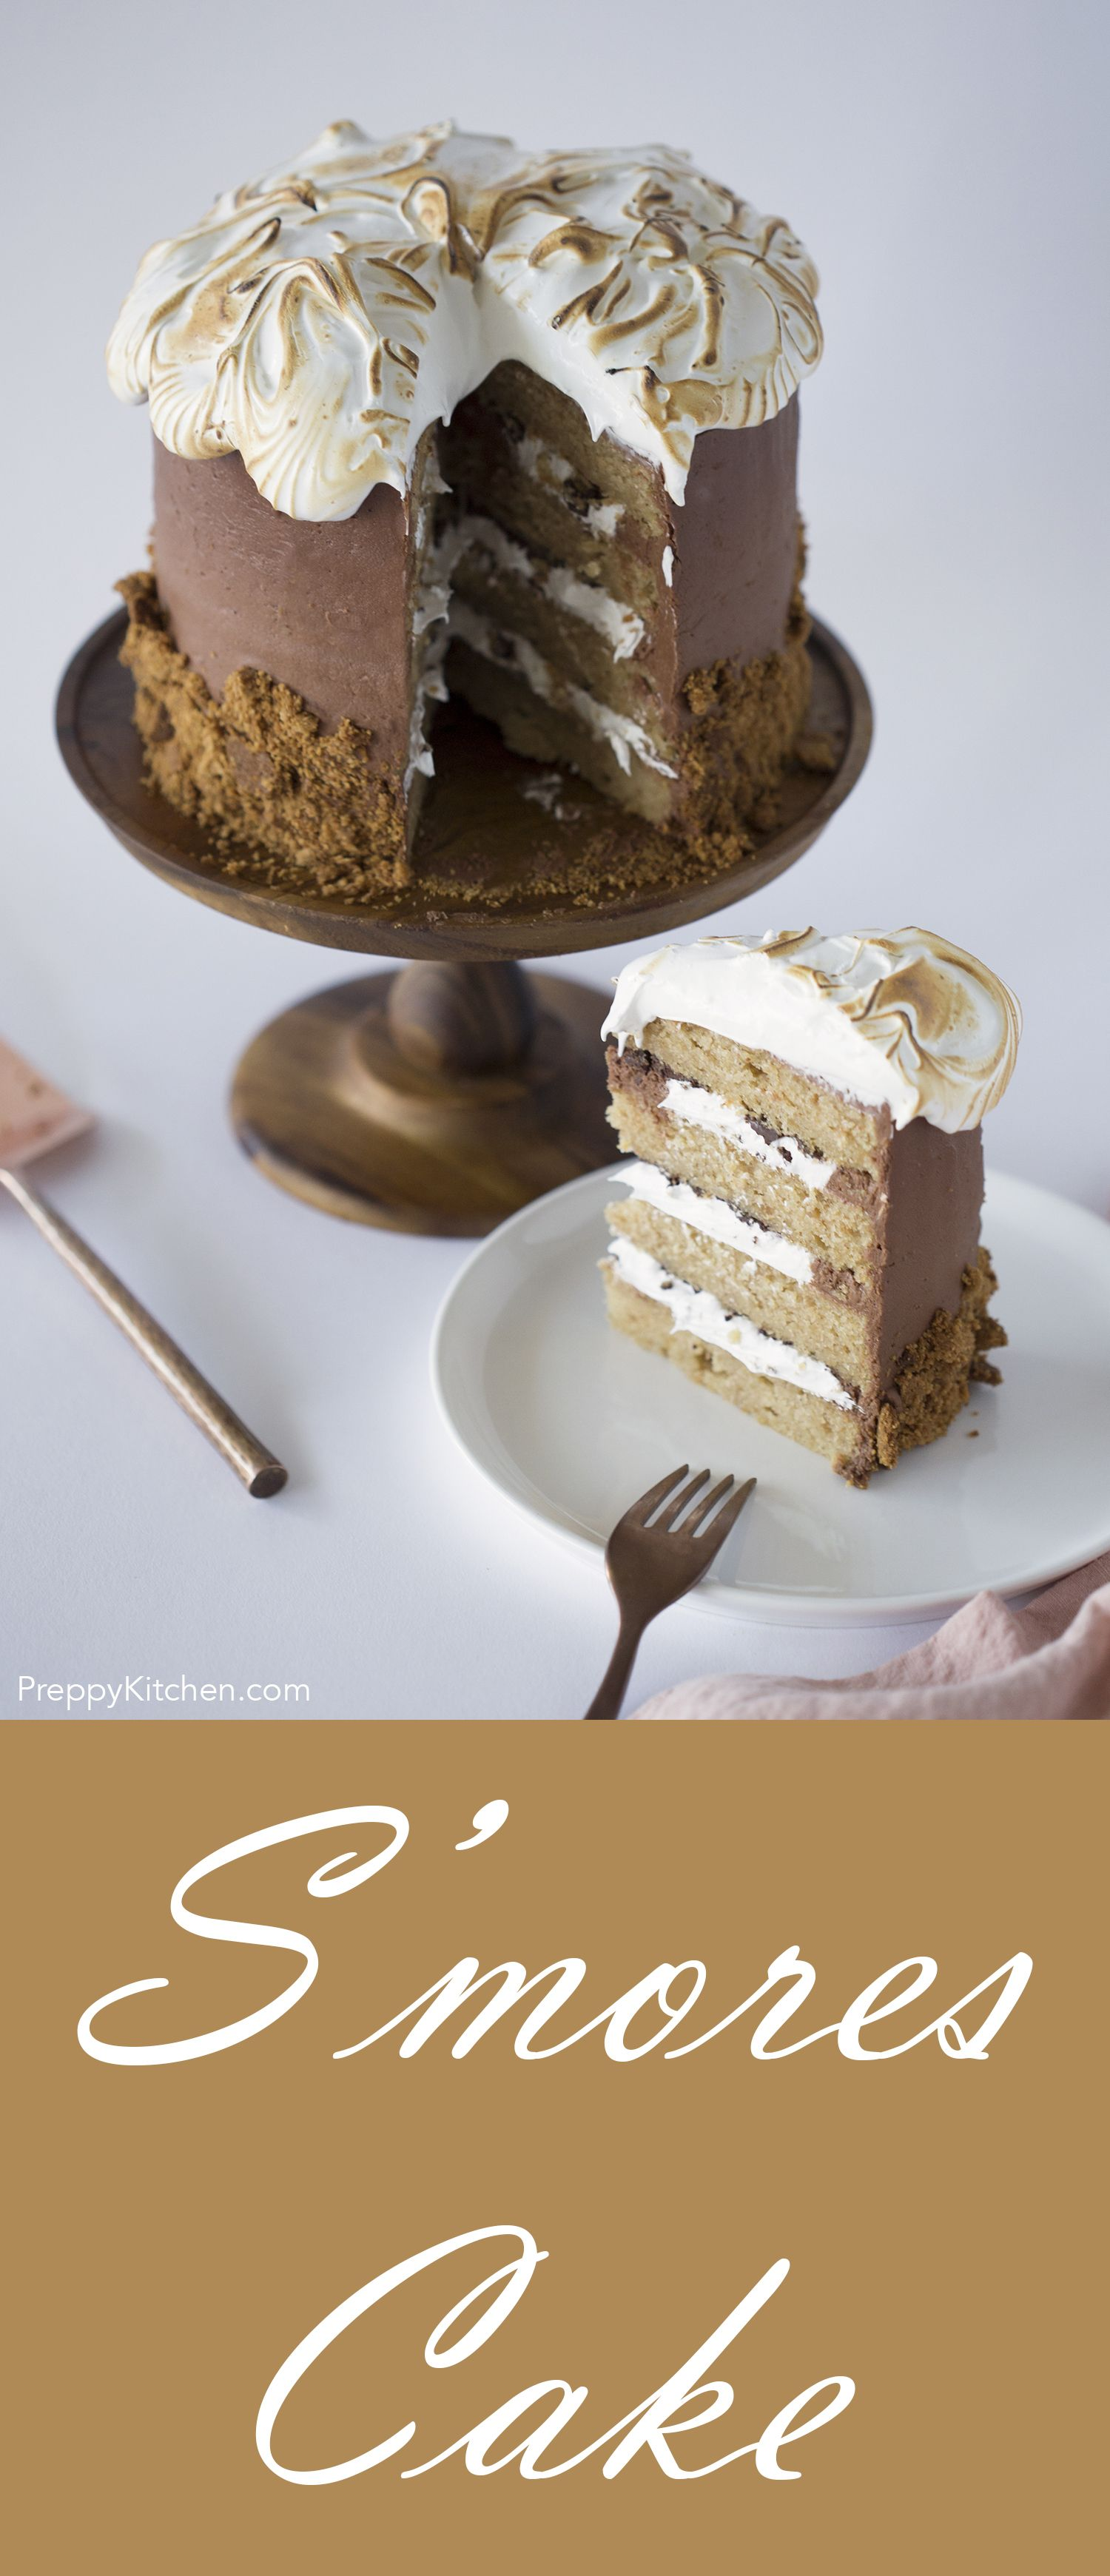 Easy SMores Cake That You Can Make At Home